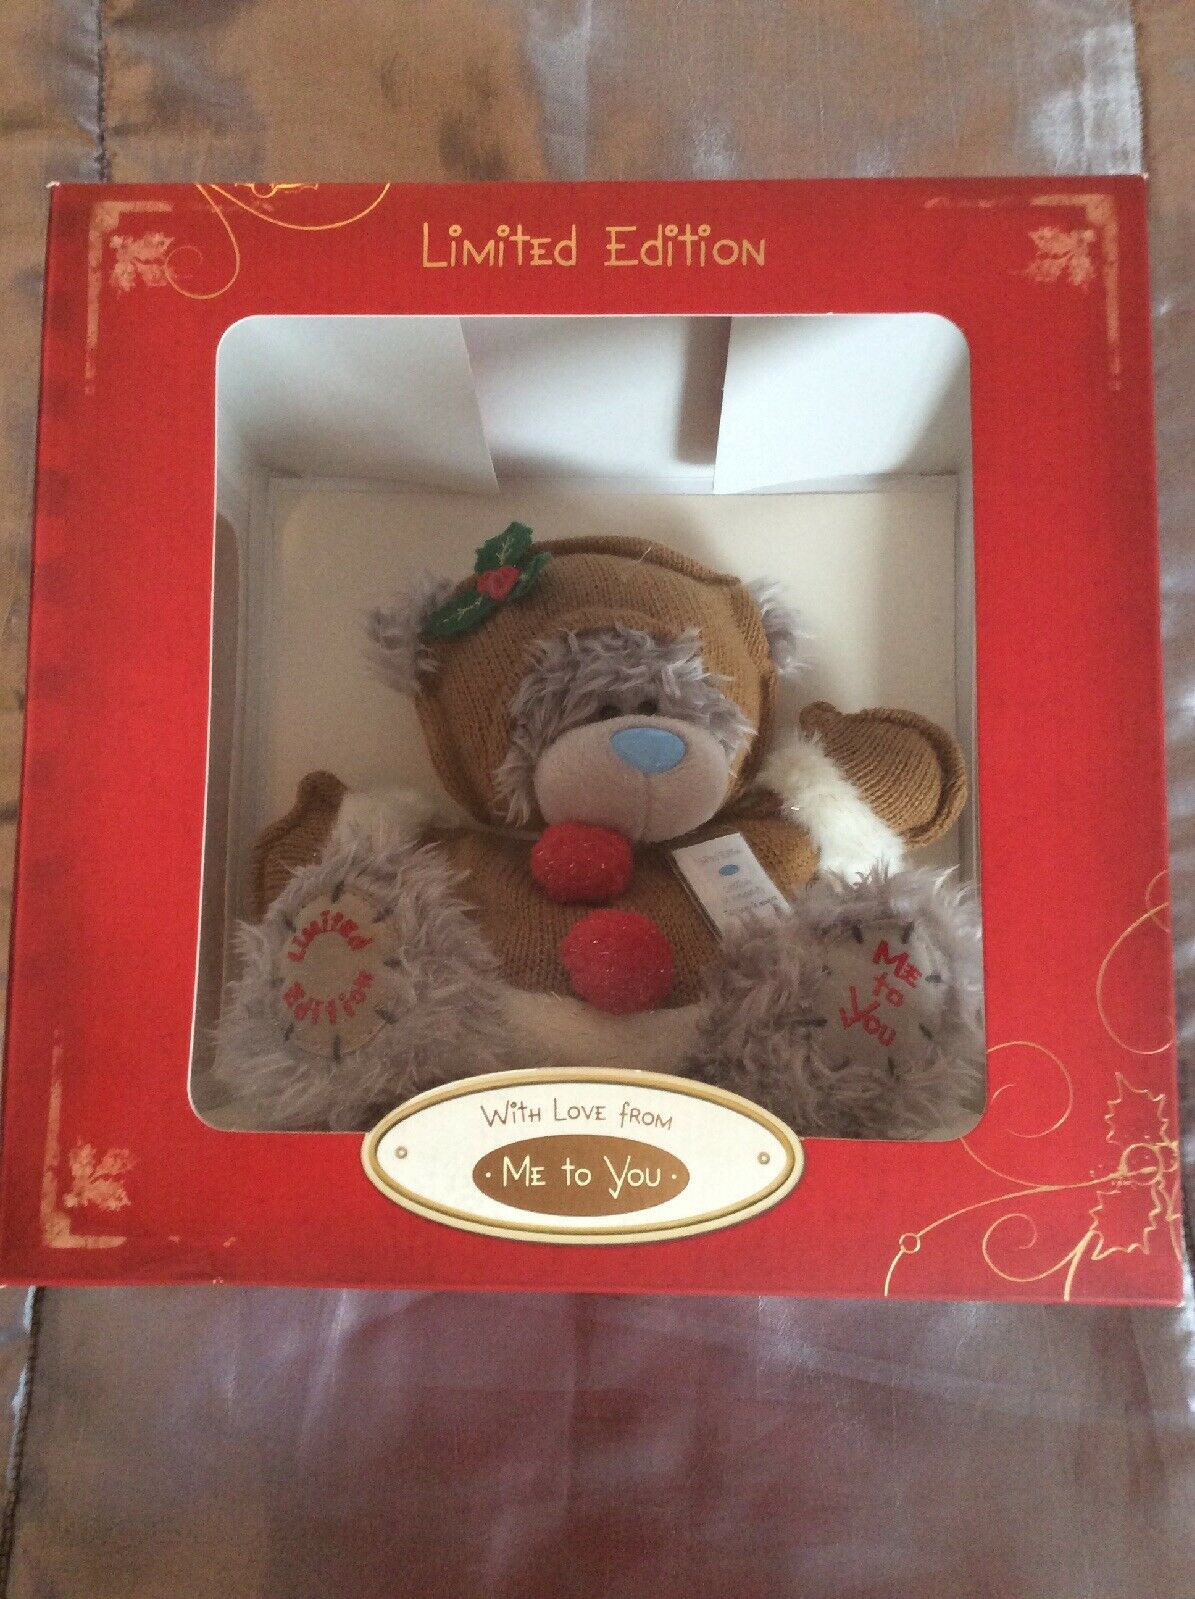 BNIB Brand New Rare Me To You grau Bear Tatty Teddy Limited Edition Christmas